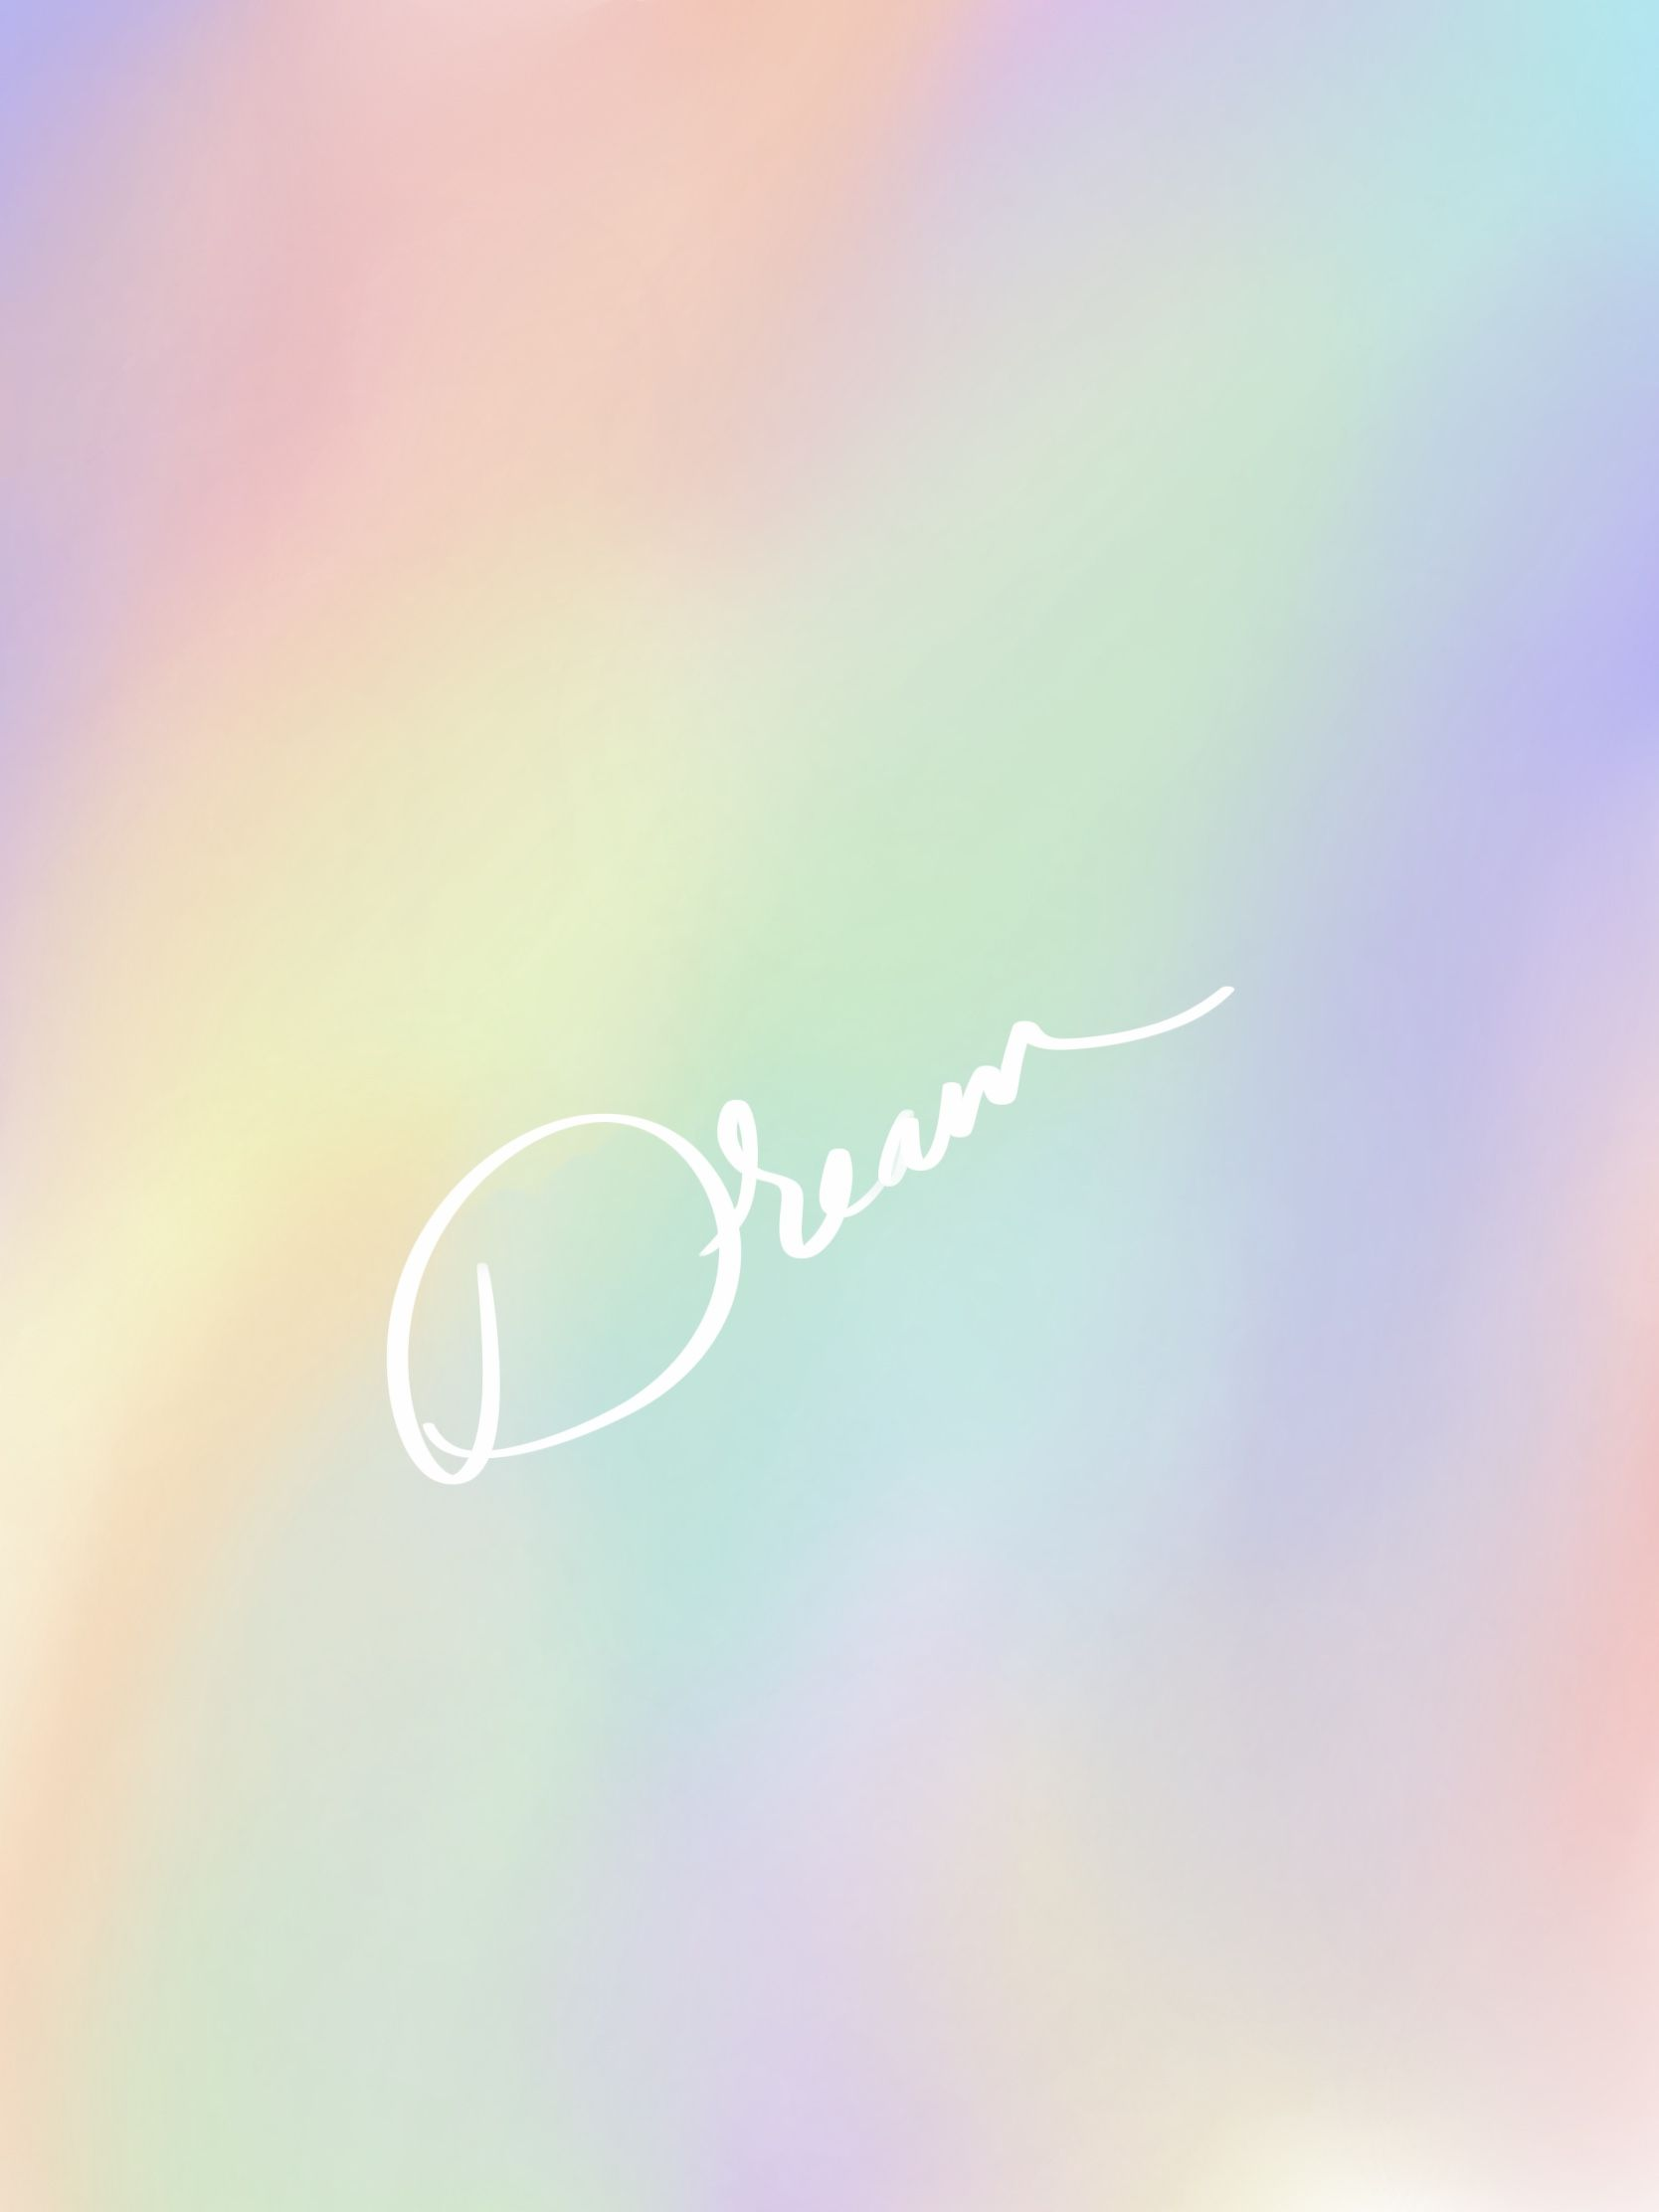 Dream Wallpaper Iphone Wallpaper Rainbow Background White Letters Simple Wallpaper Procreat Iphone Wallpaper Wallpaper Iphone Christmas Rainbow Background